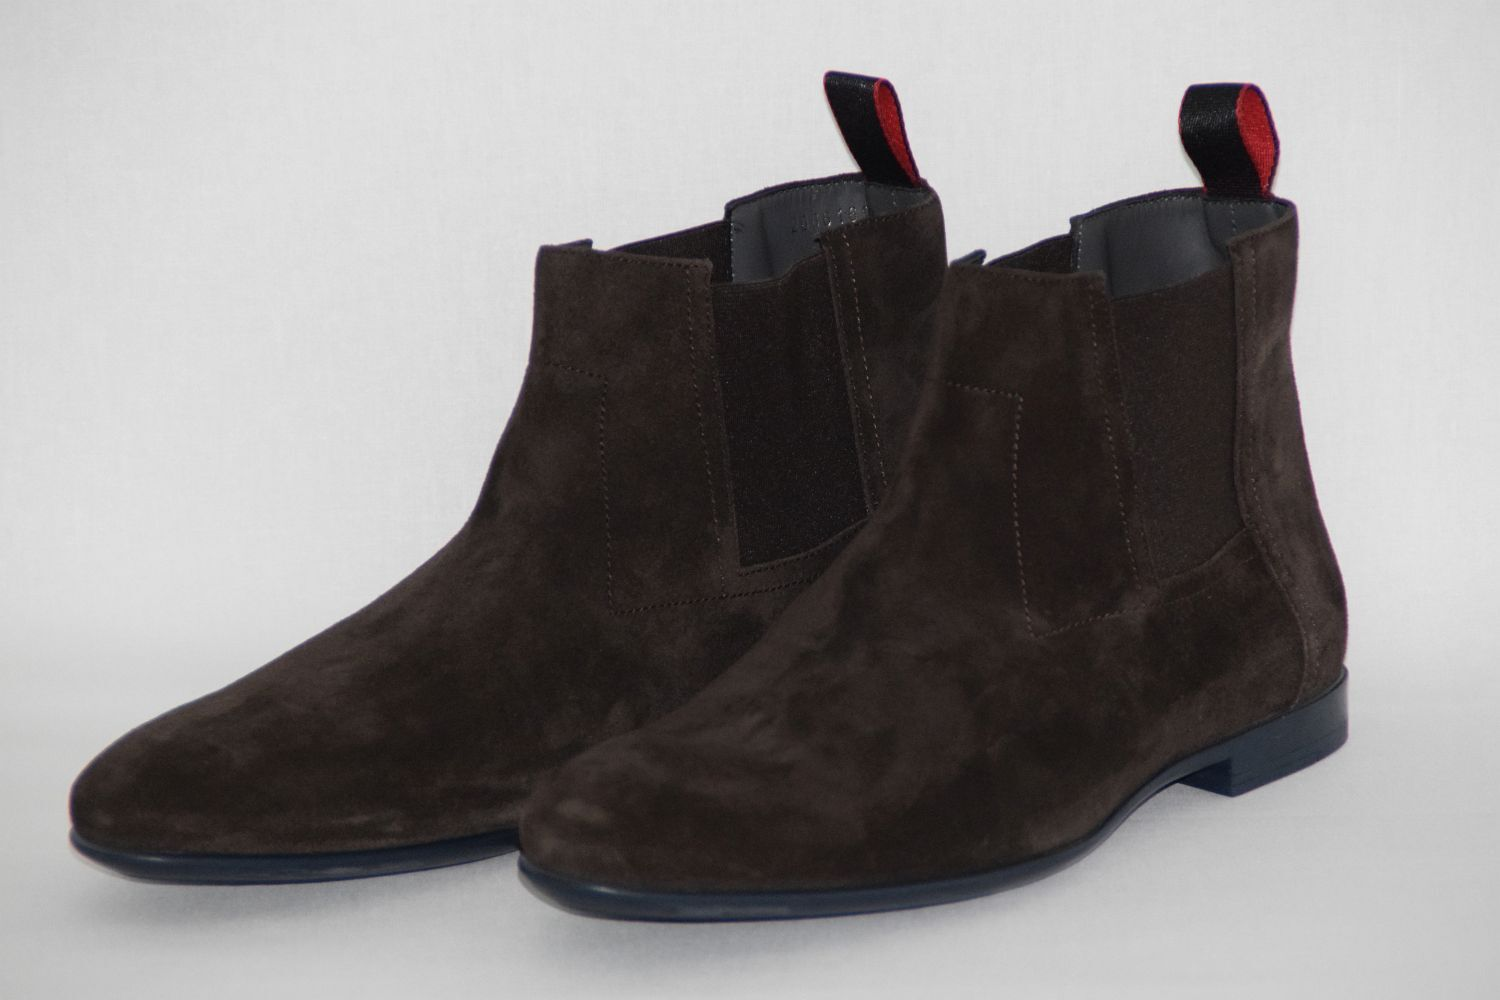 Hugo BOSS boots, Tg. 42//US 9, UVP: , MADE IN ITALY, DARK BROWN